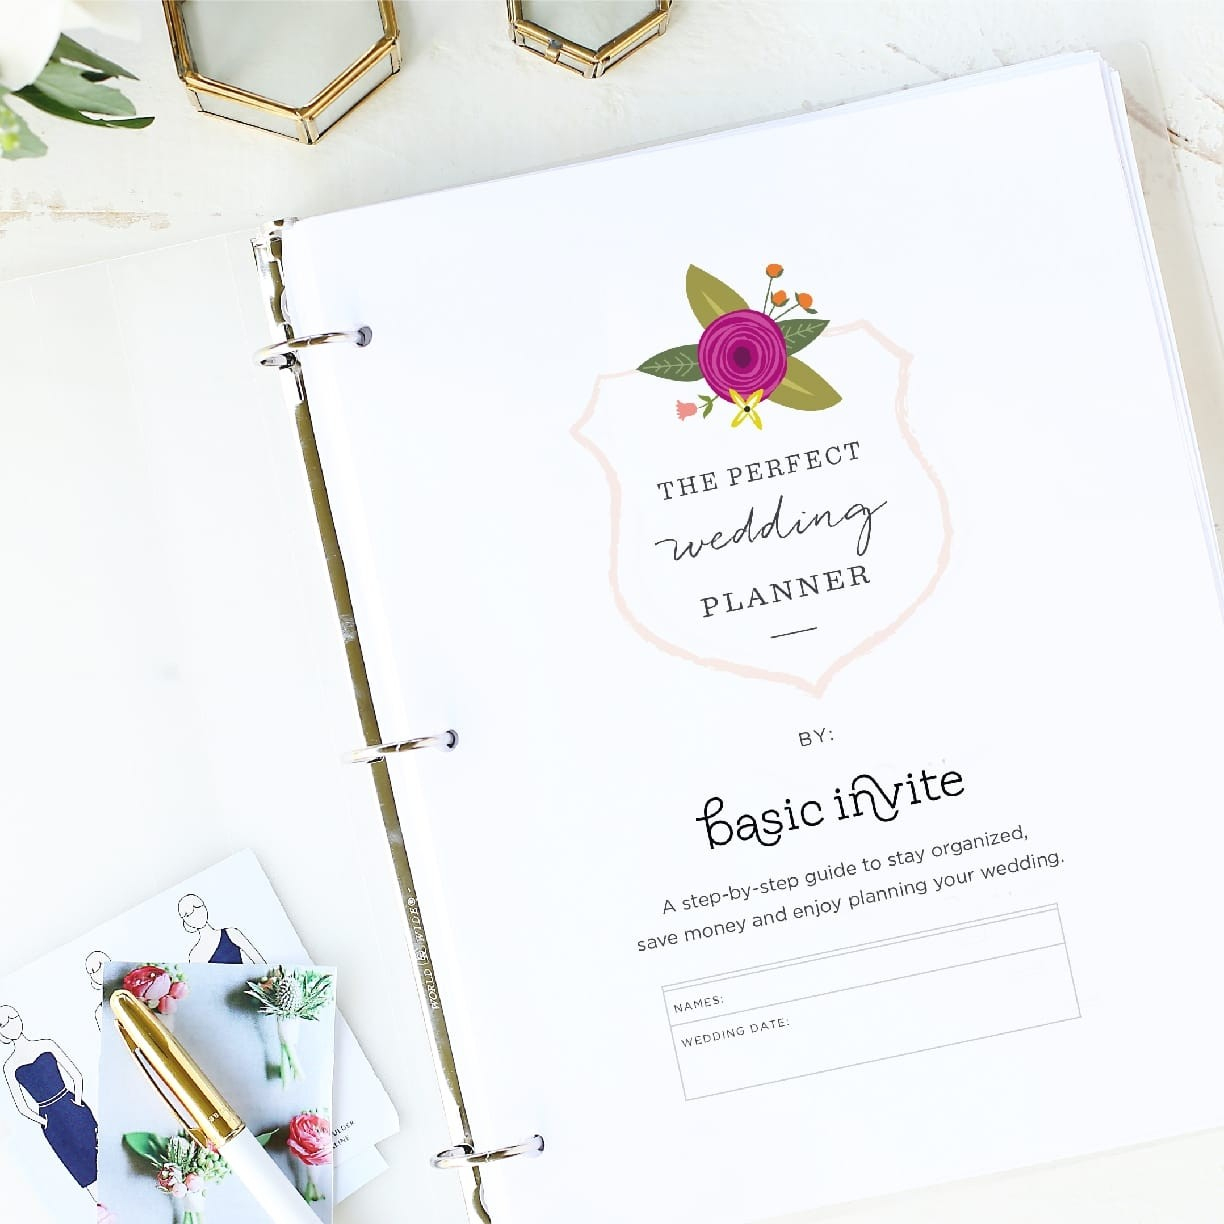 Wedding Printables And Free Wedding Templates | Basic Invite - Free Printable Wedding Planner Forms